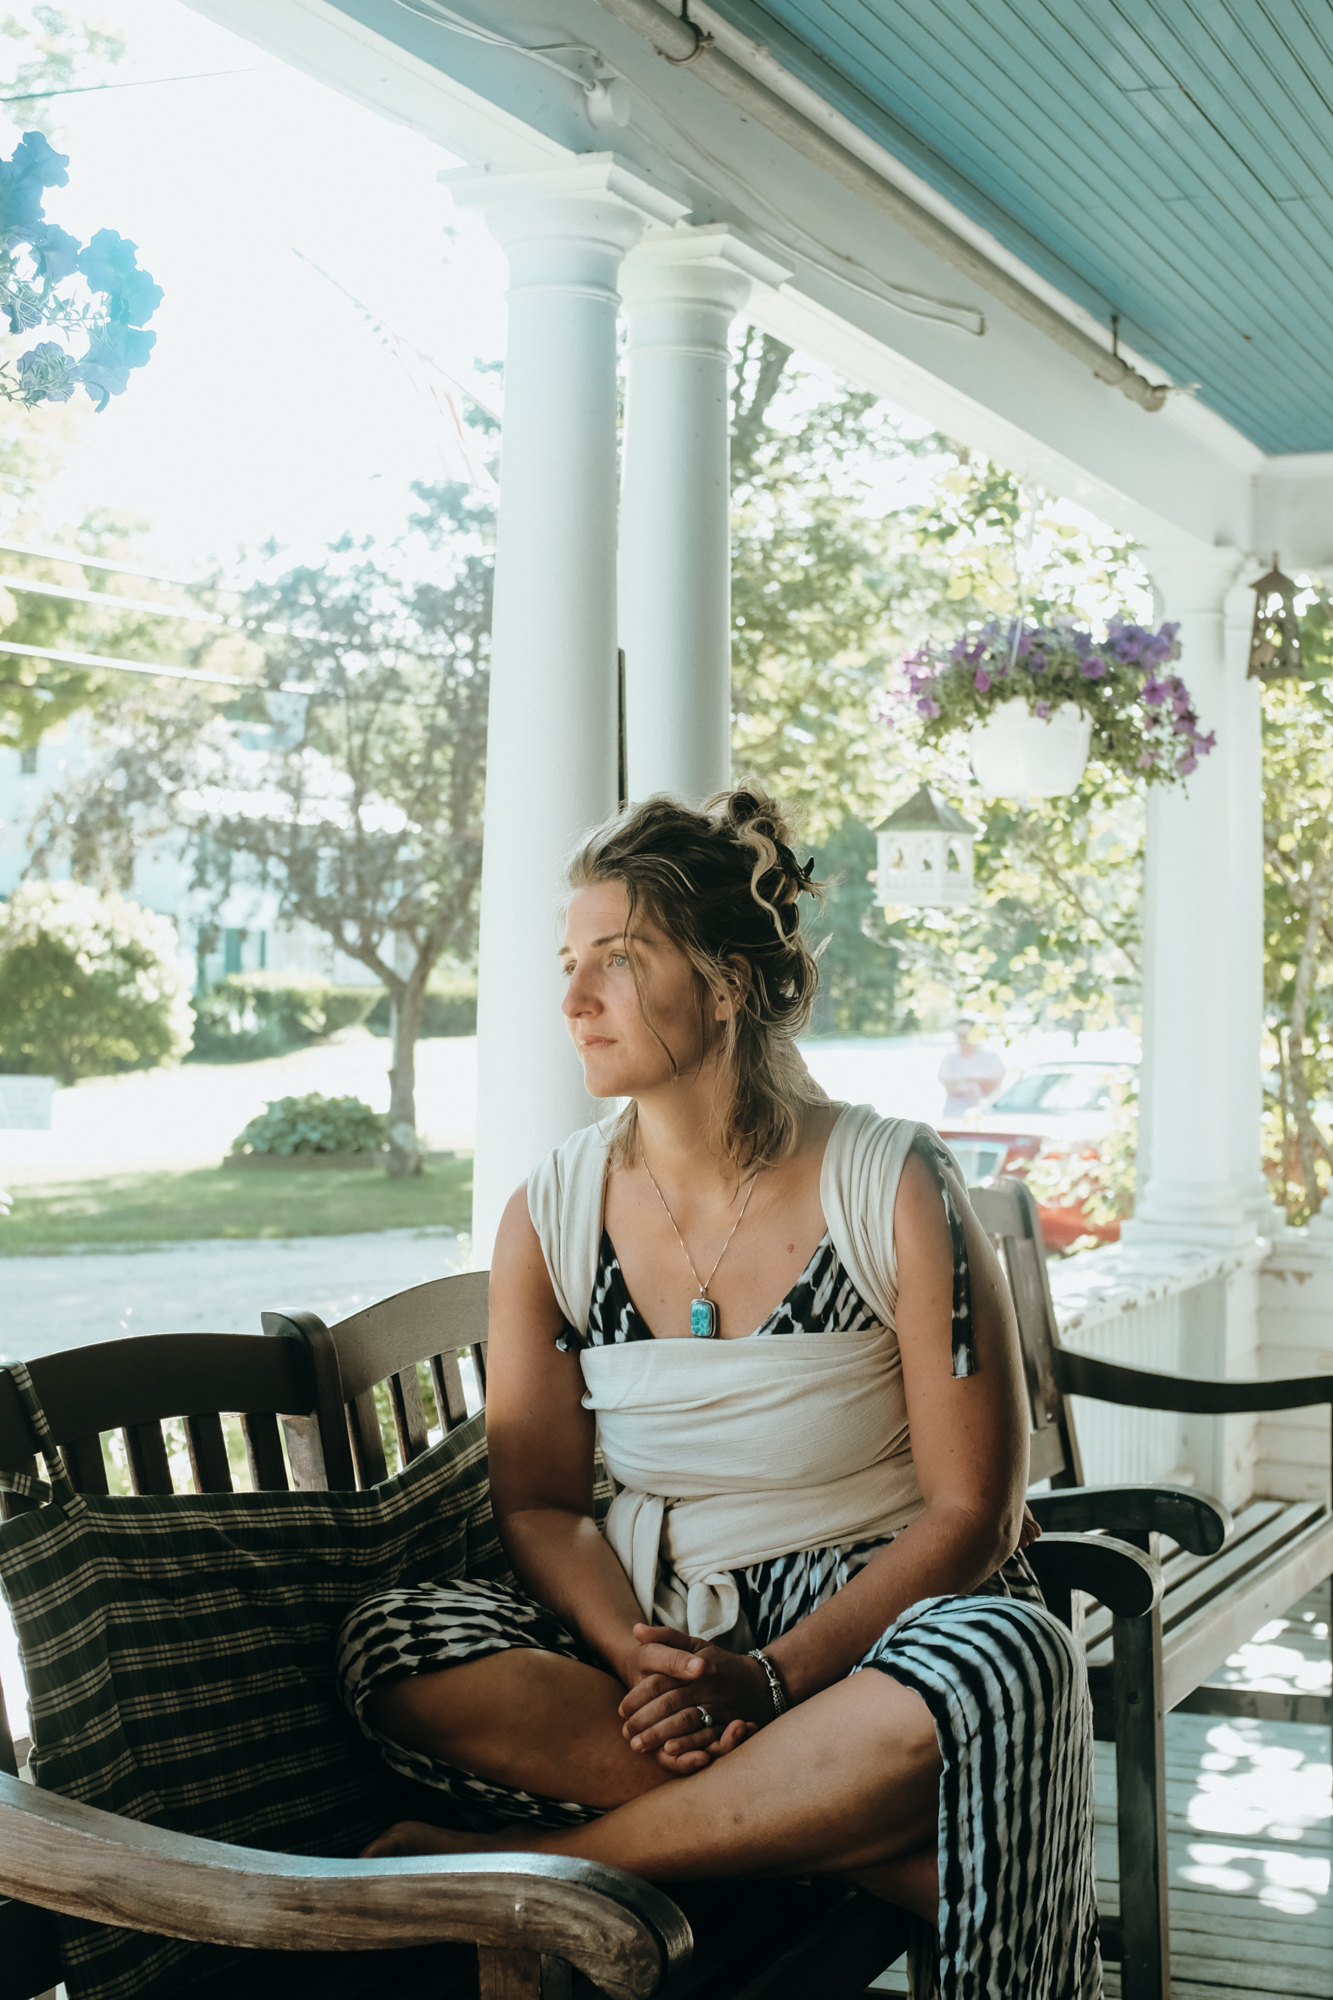 A mother carries a baby in a baby wrap carrier on her back on a porch in New Hampshire, New England.